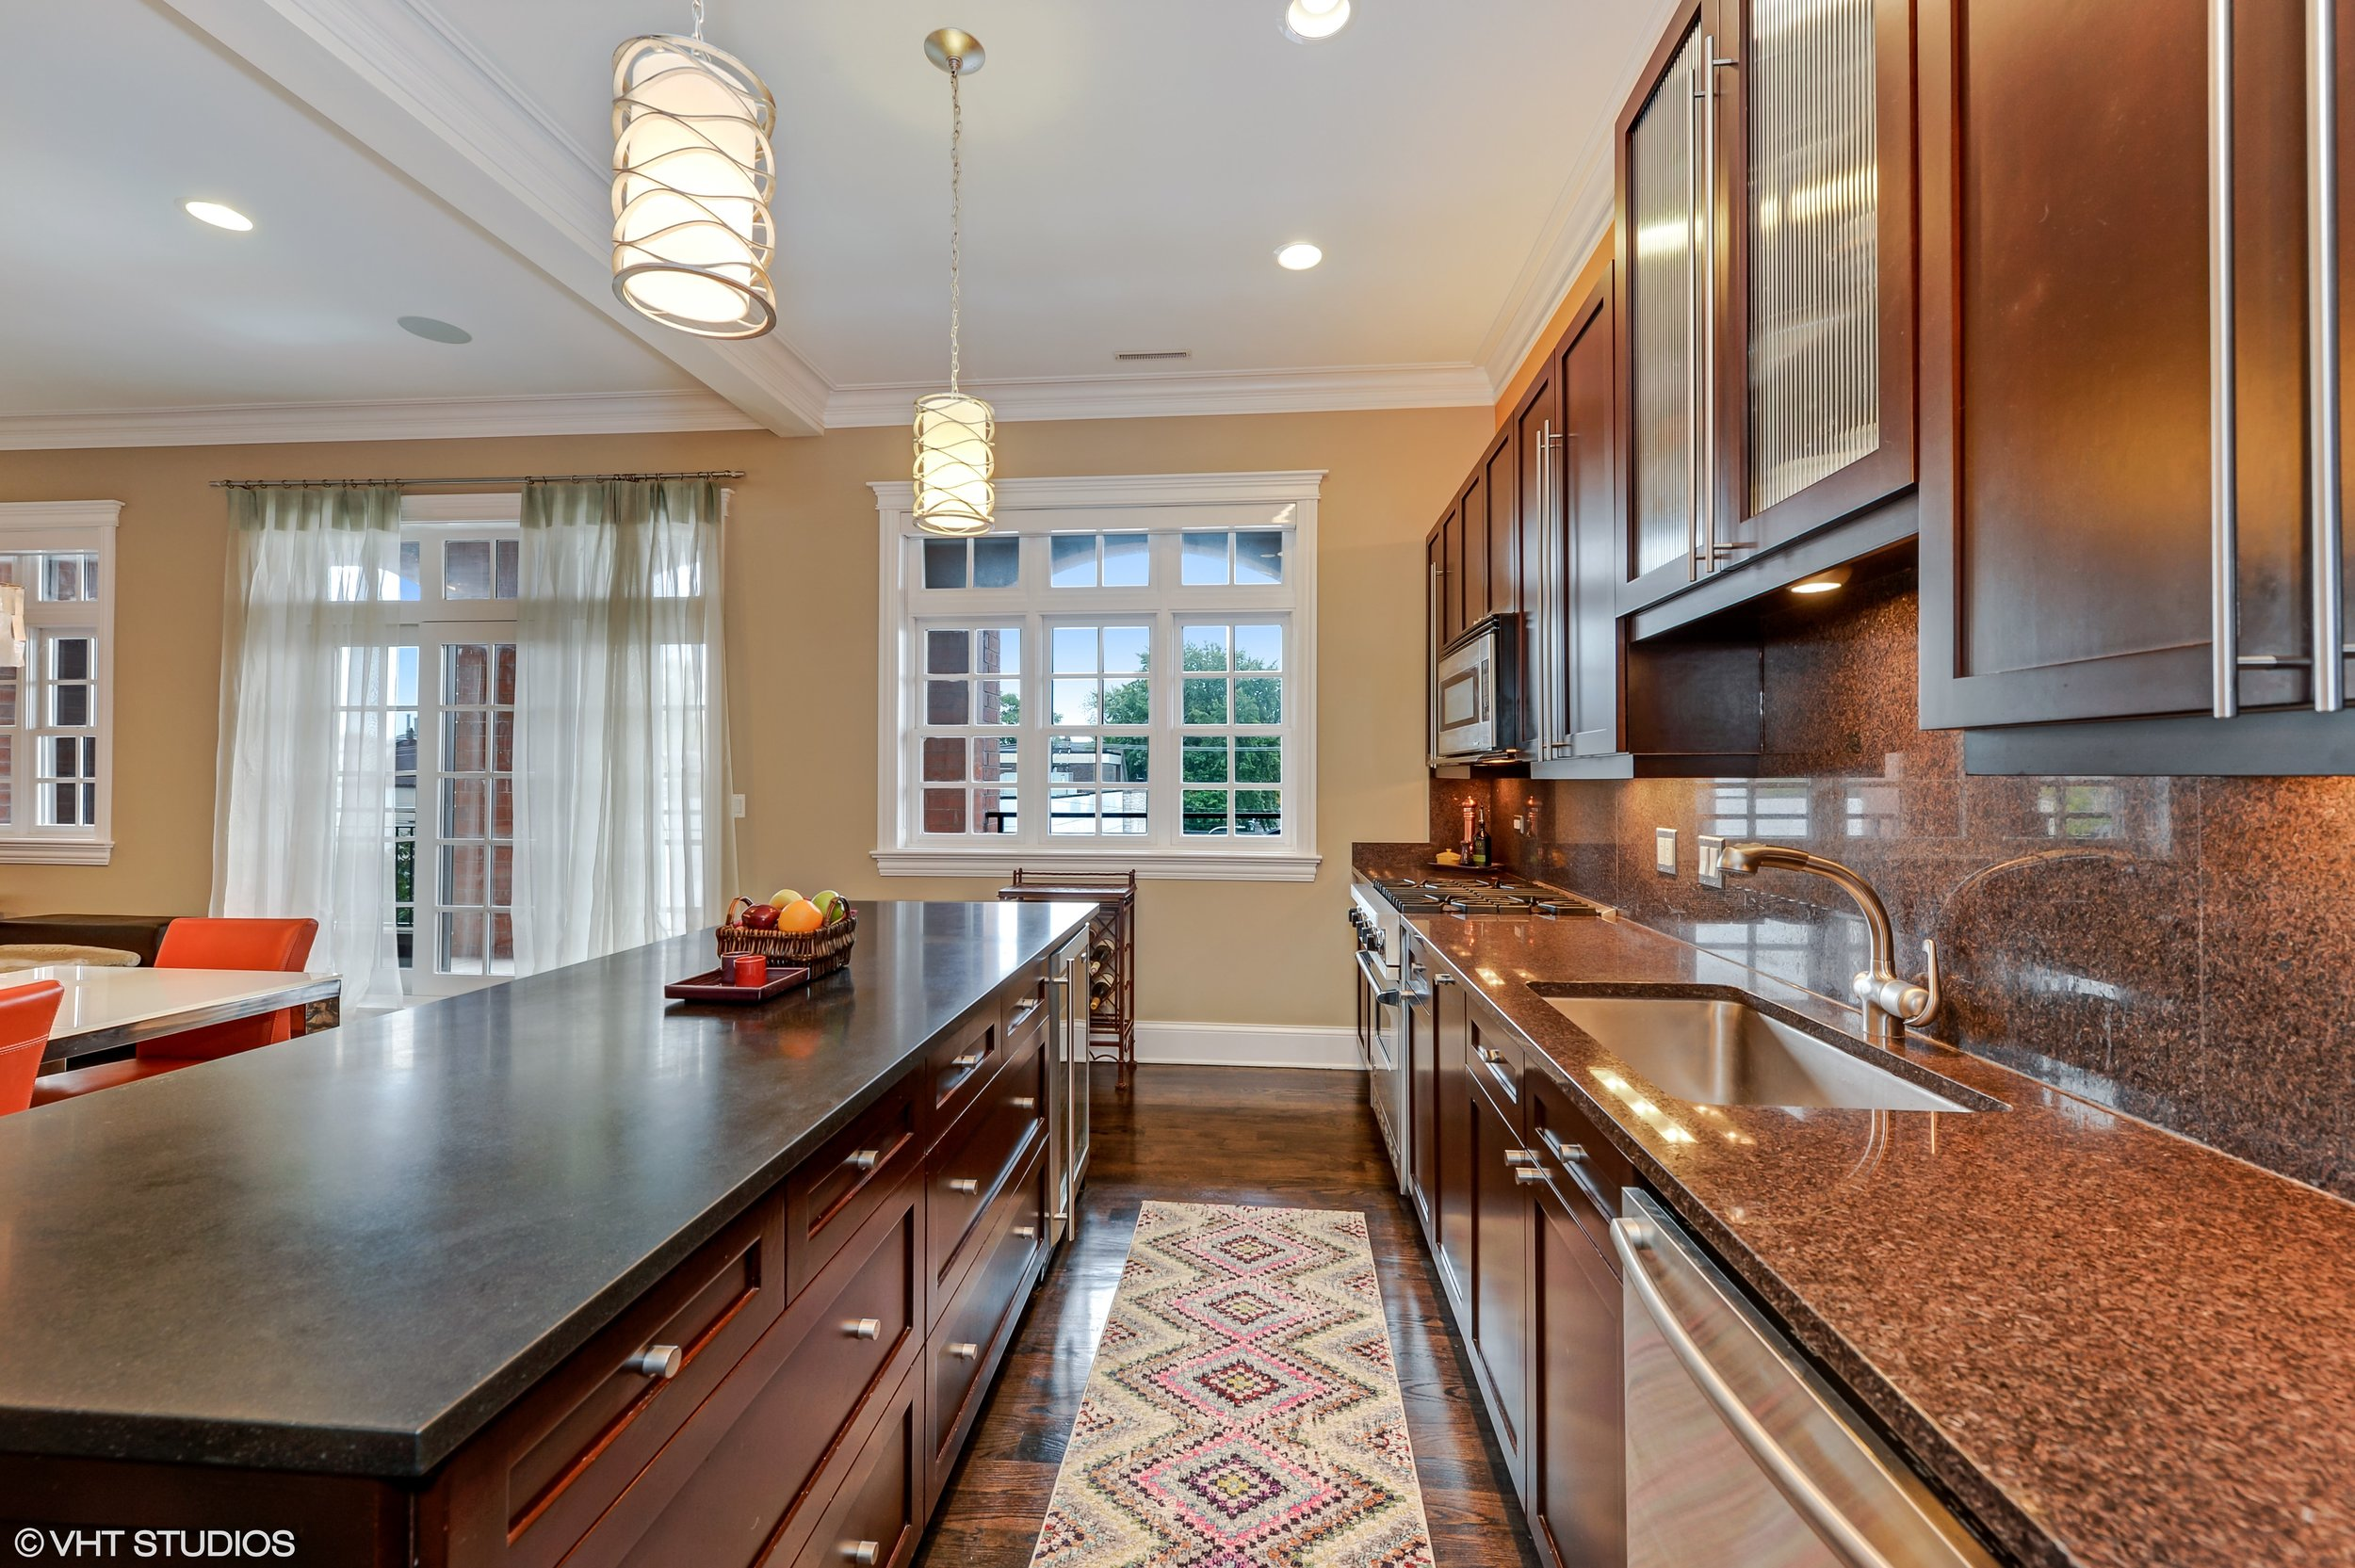 07_3330NorthAshlandAve_2_177_Kitchen_HiRes.jpg